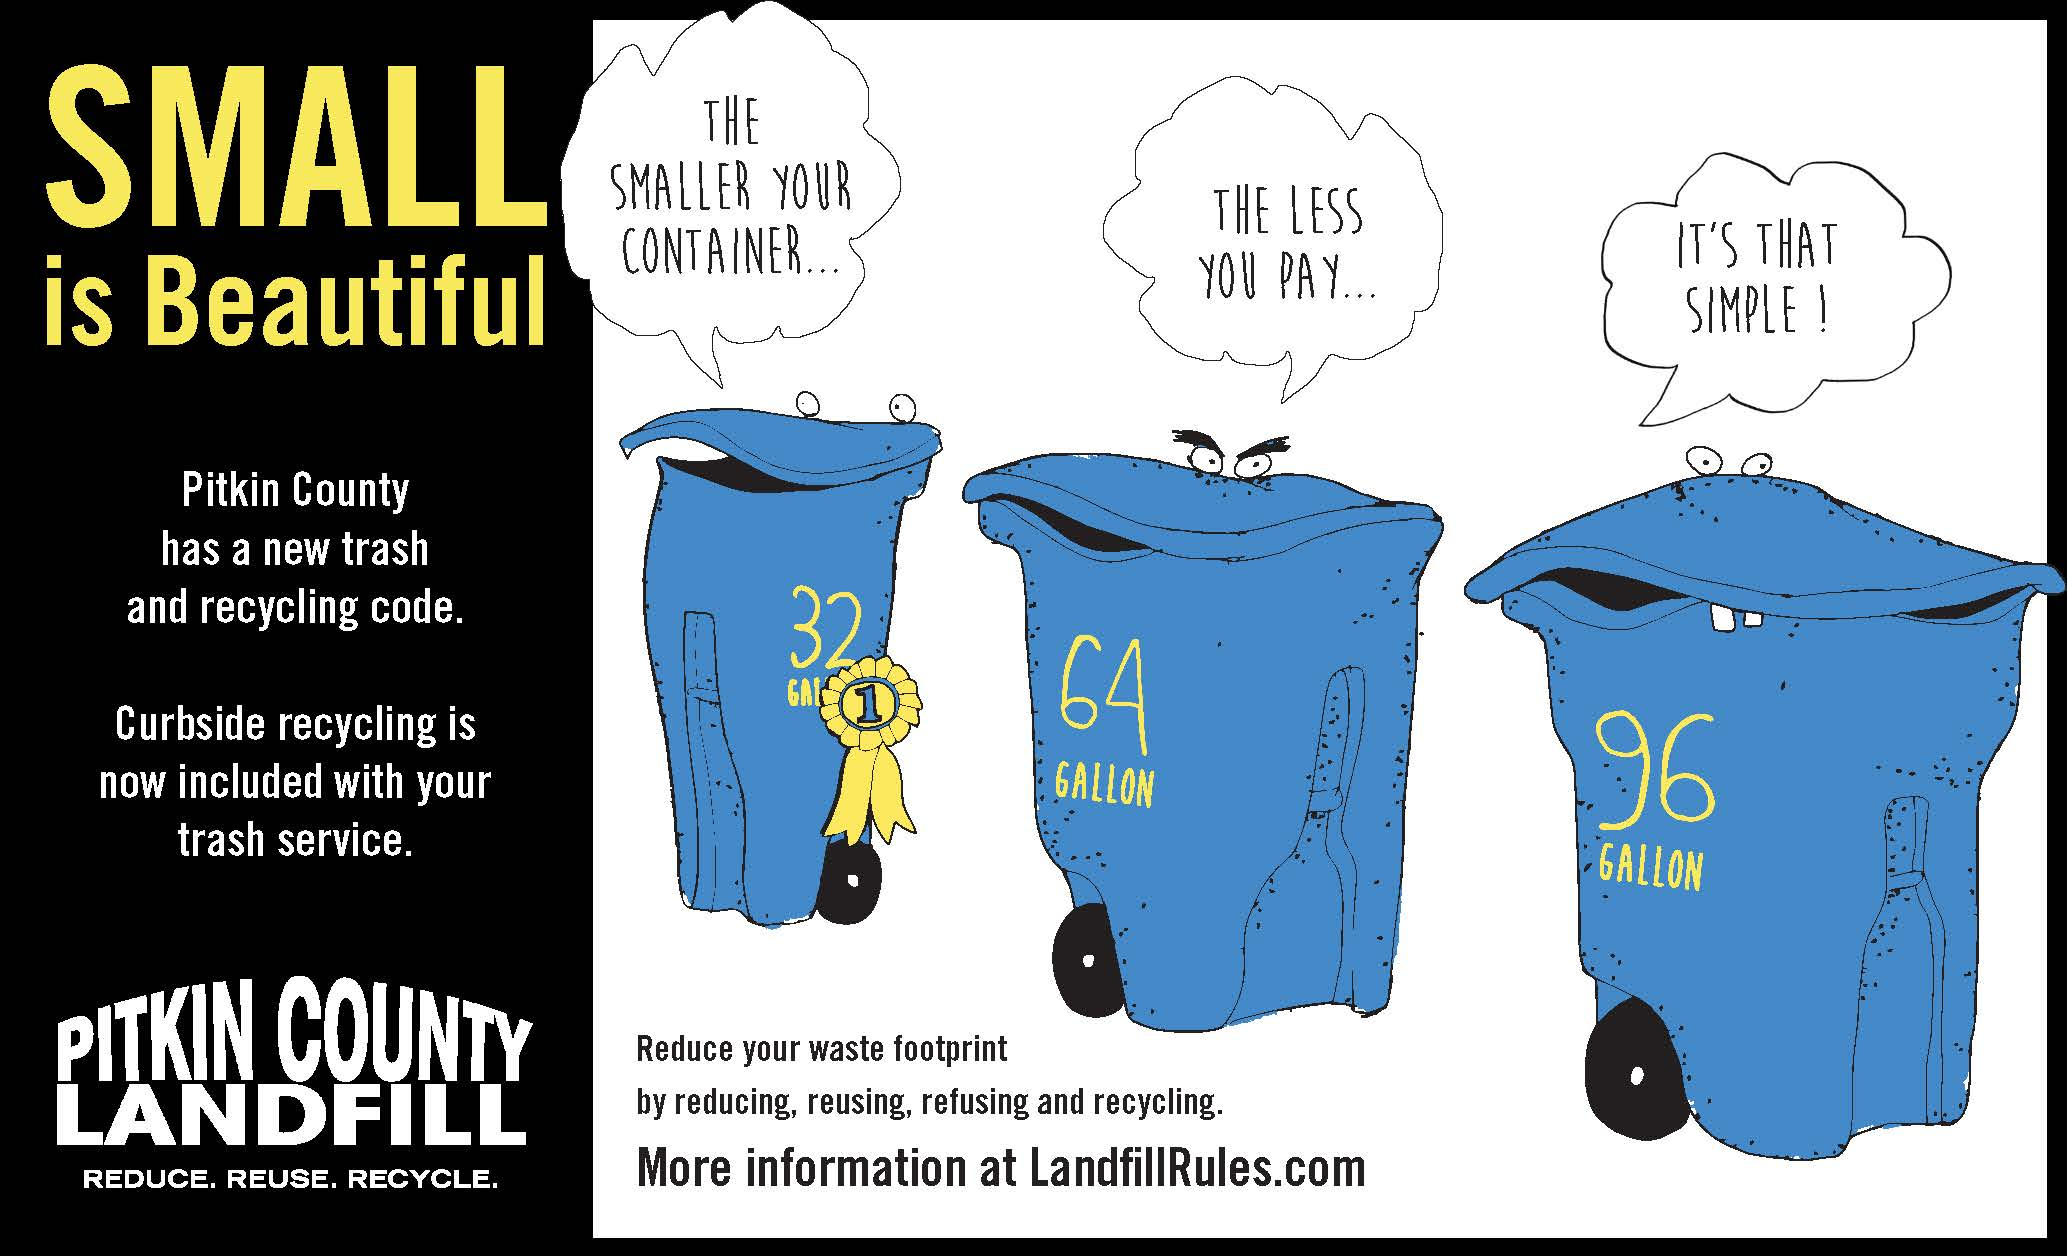 Pitco-Landfill-Half-ADN-021519-Small-is-Beautiful (3)